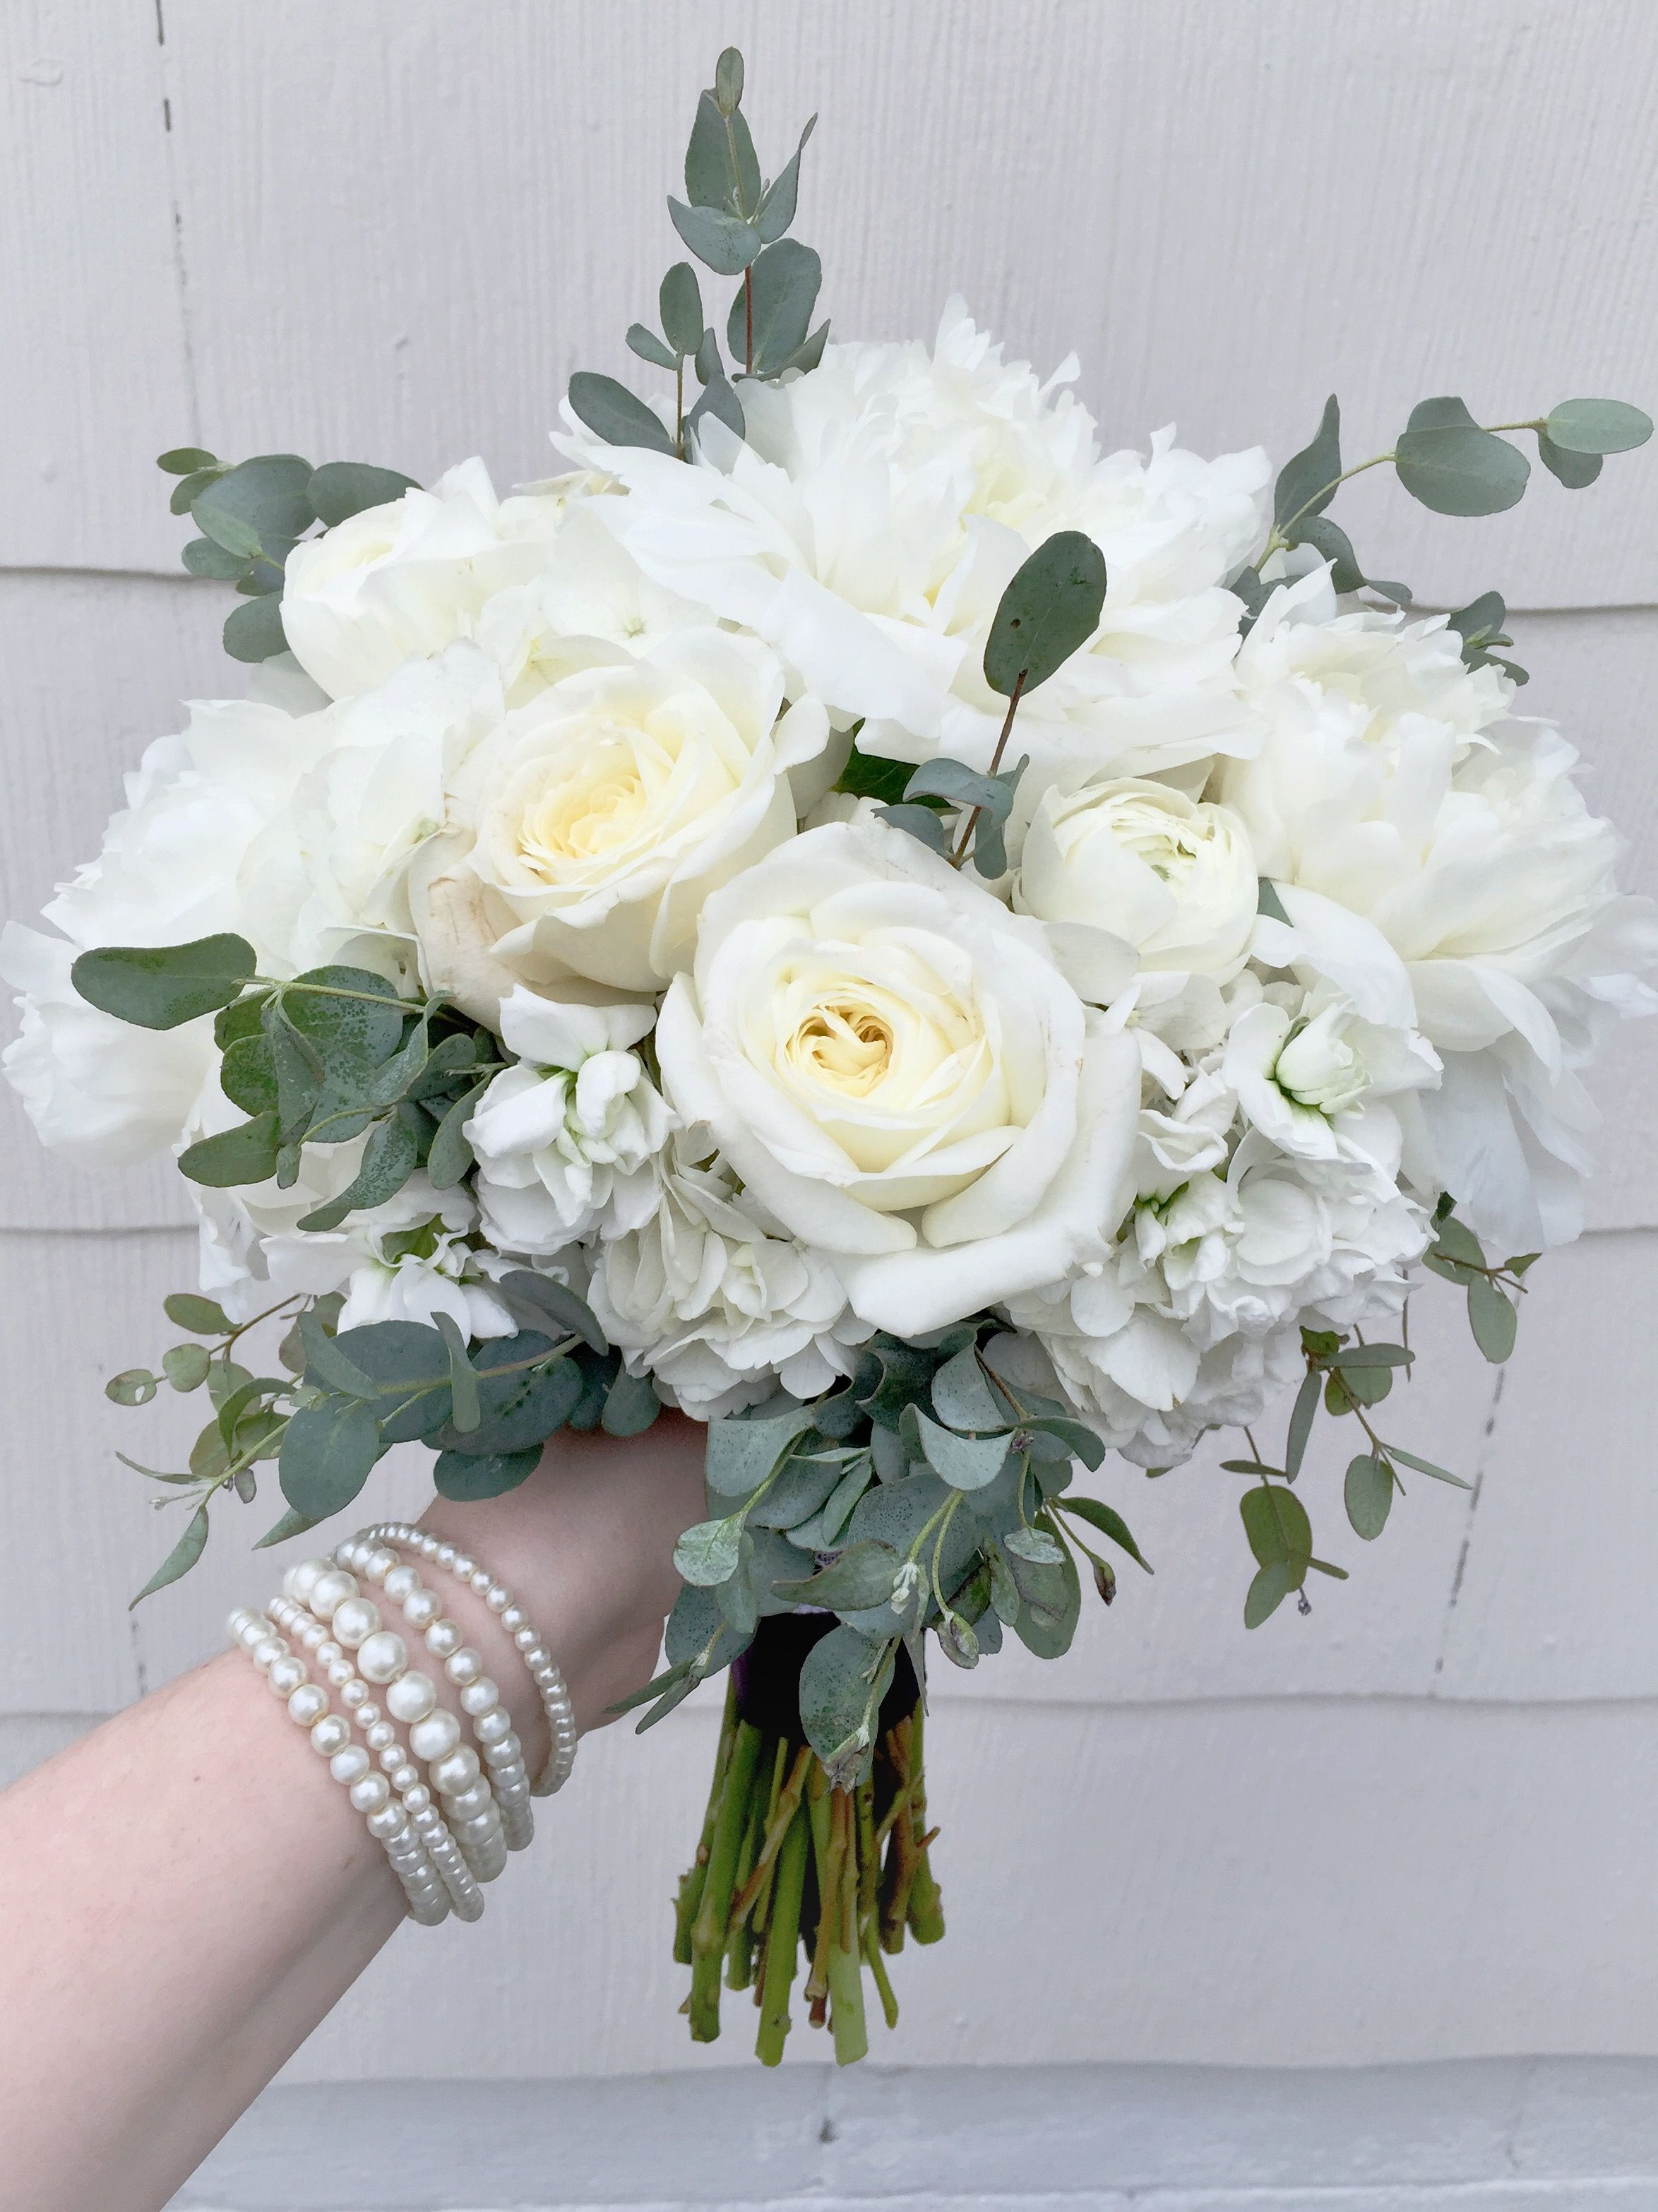 Elegant White Bridesmaidu0027s Bouquet Composed Of Peonies, Stock, Garden Roses,  Ranunculus, And Eucalyptus. Designed By Leah Bayes At West View Florist In  ...